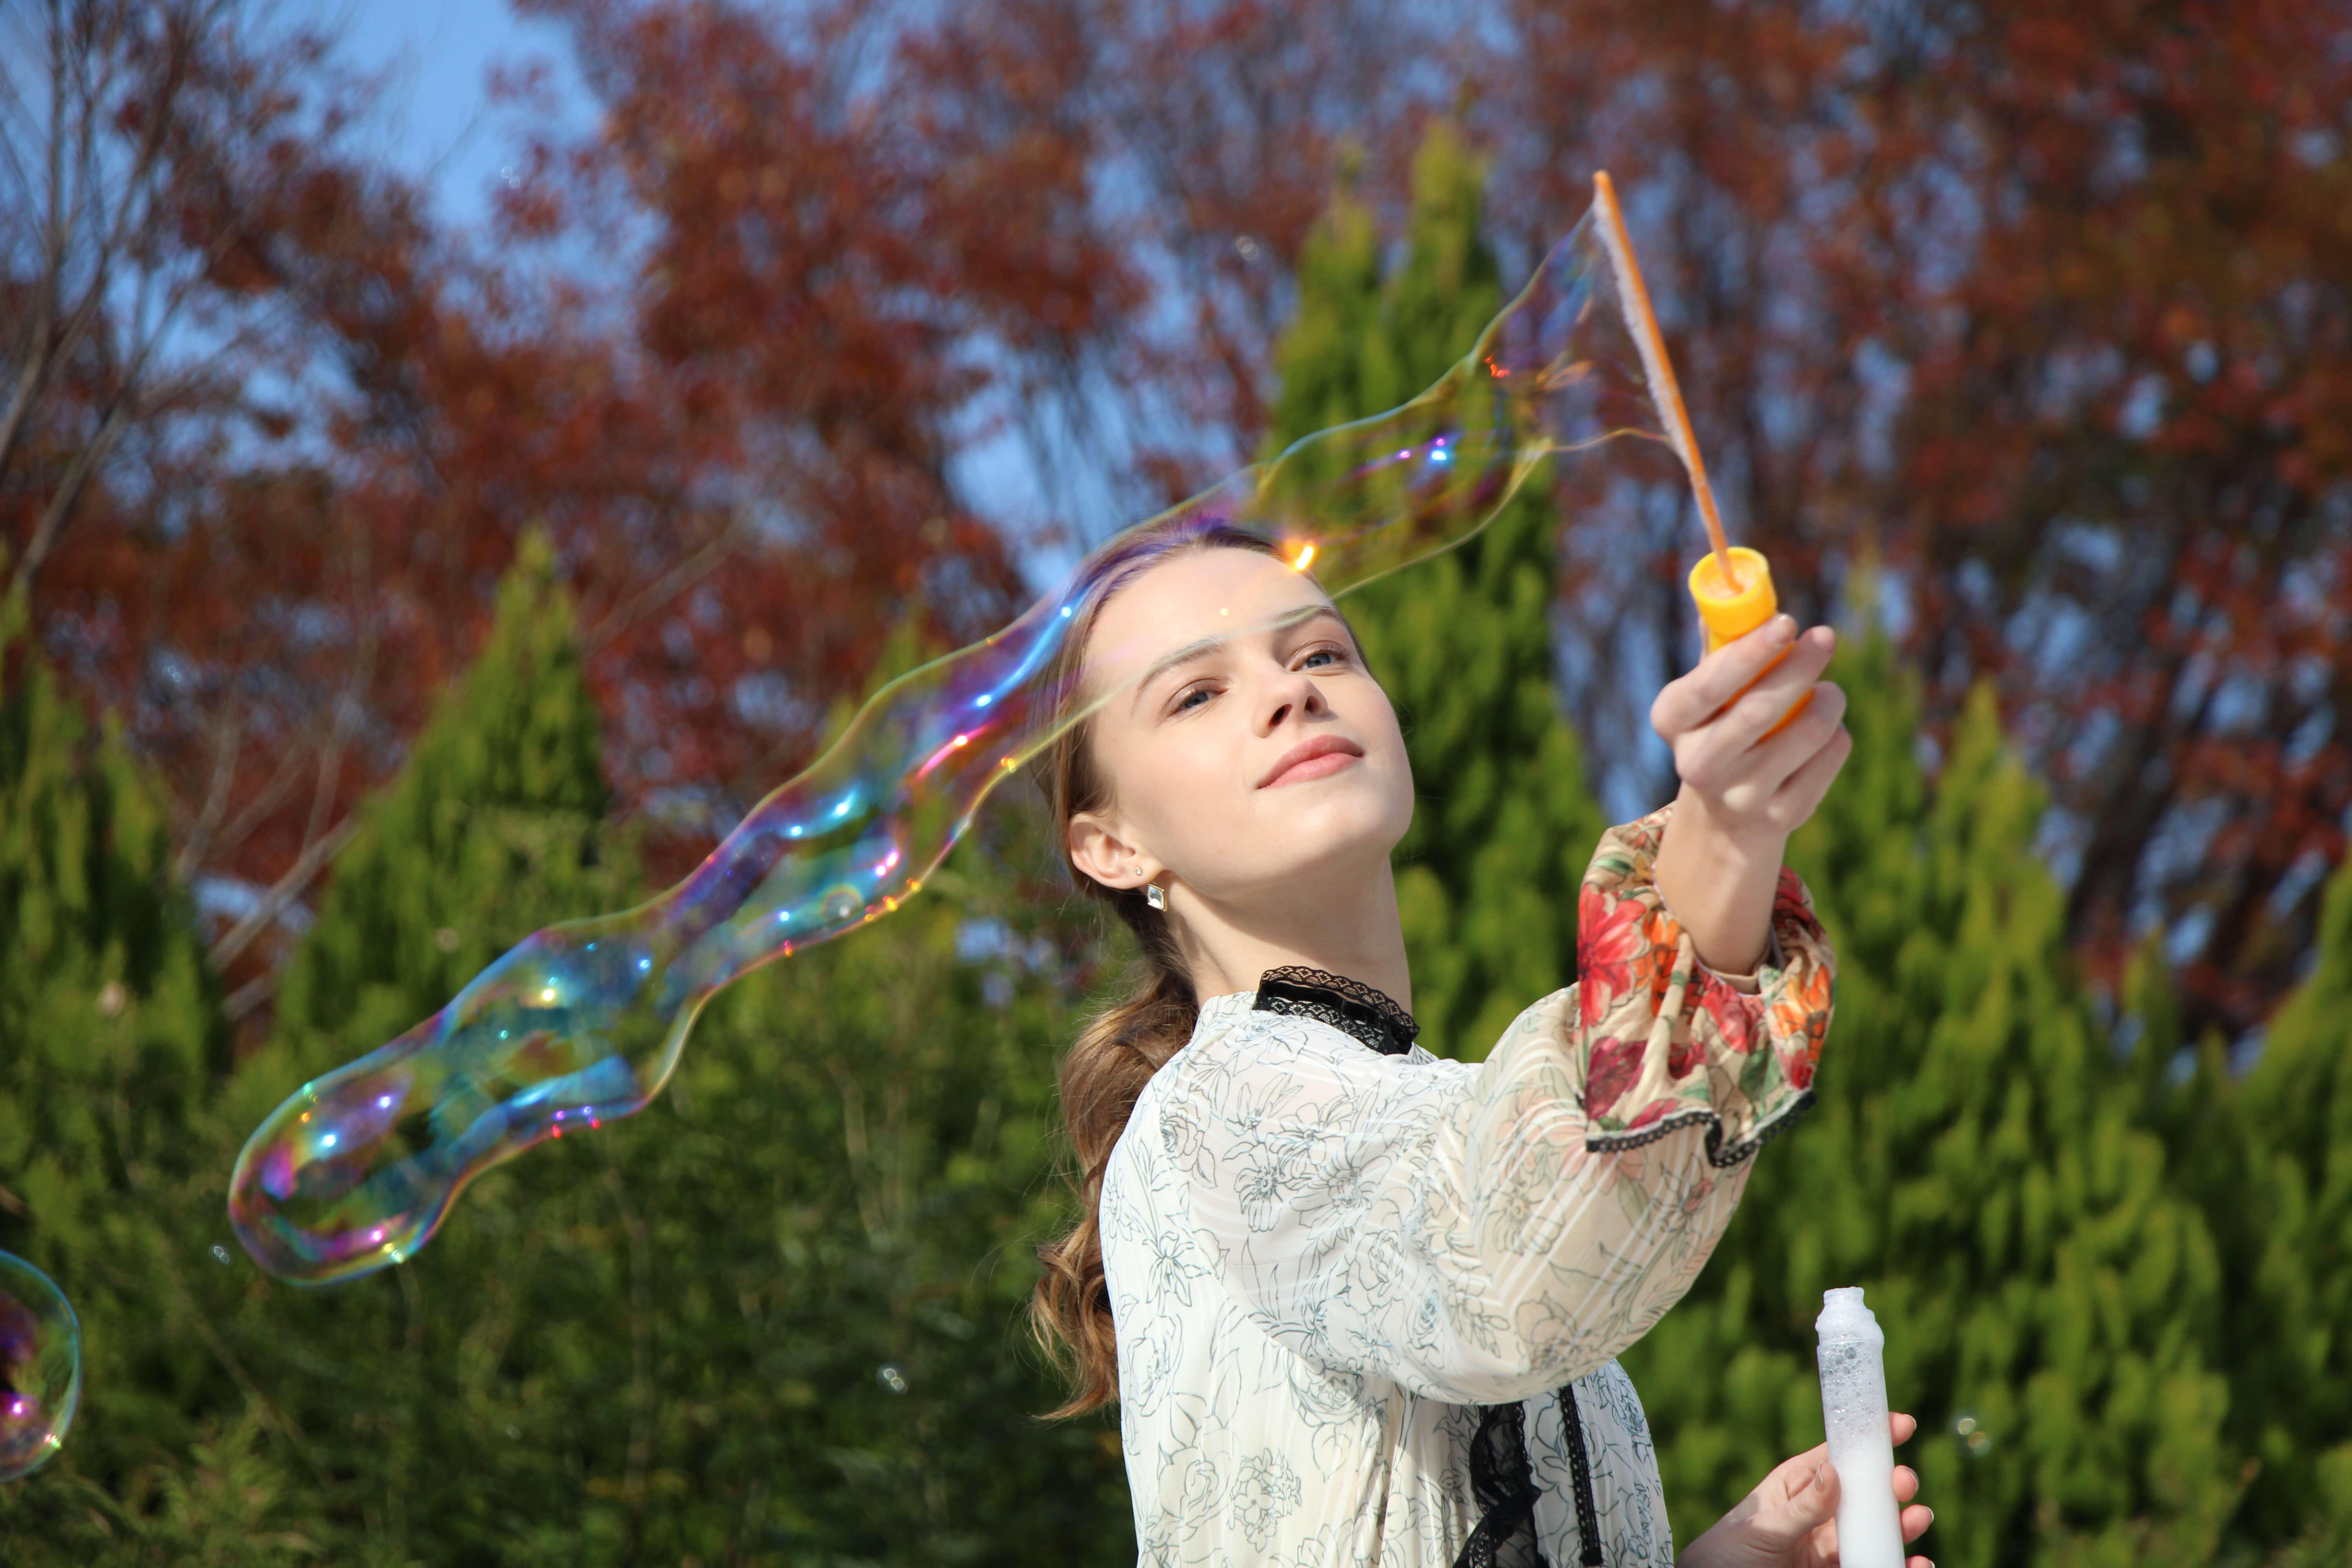 Portrait image of girl clowing bubbles taken with EOS 1500D